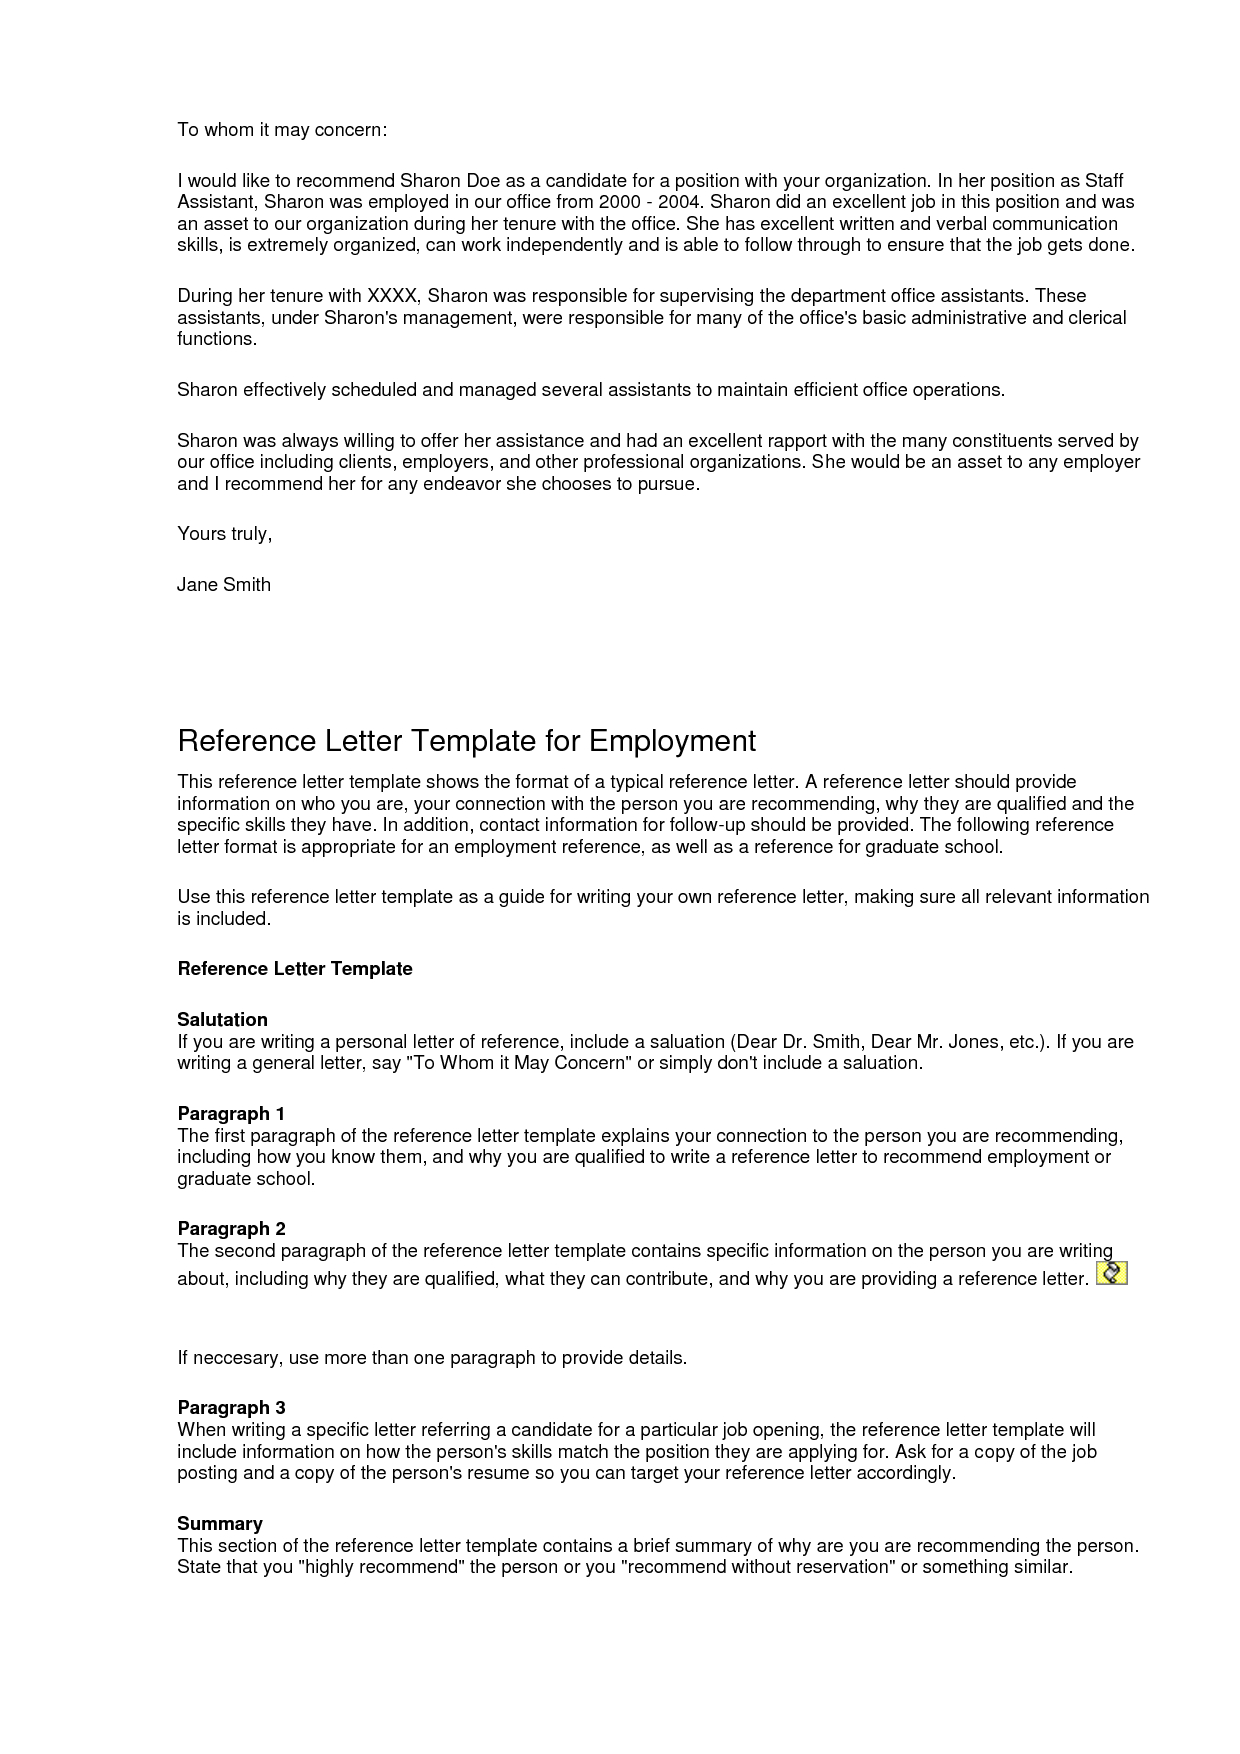 Writing A Letter Of Recommendation Template - Examples Letter Re Mendation Template